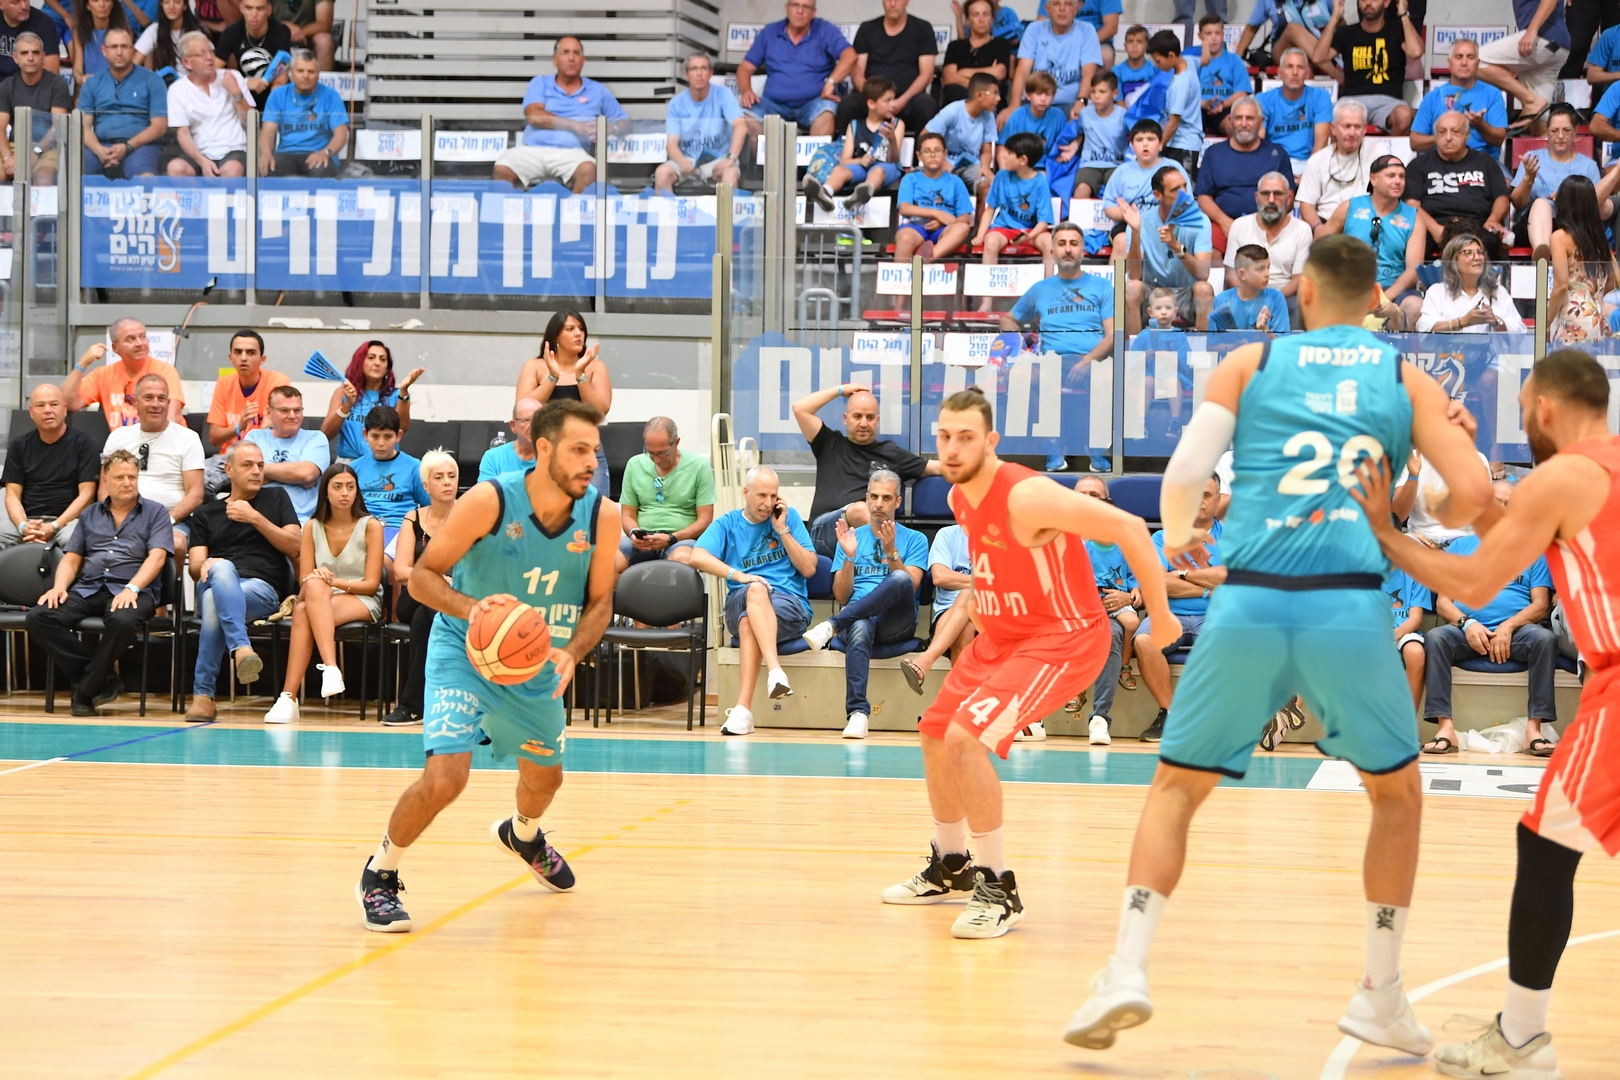 1/4 Finals, Game 3: Hapoel Eilat - Ness Ziona 84:76